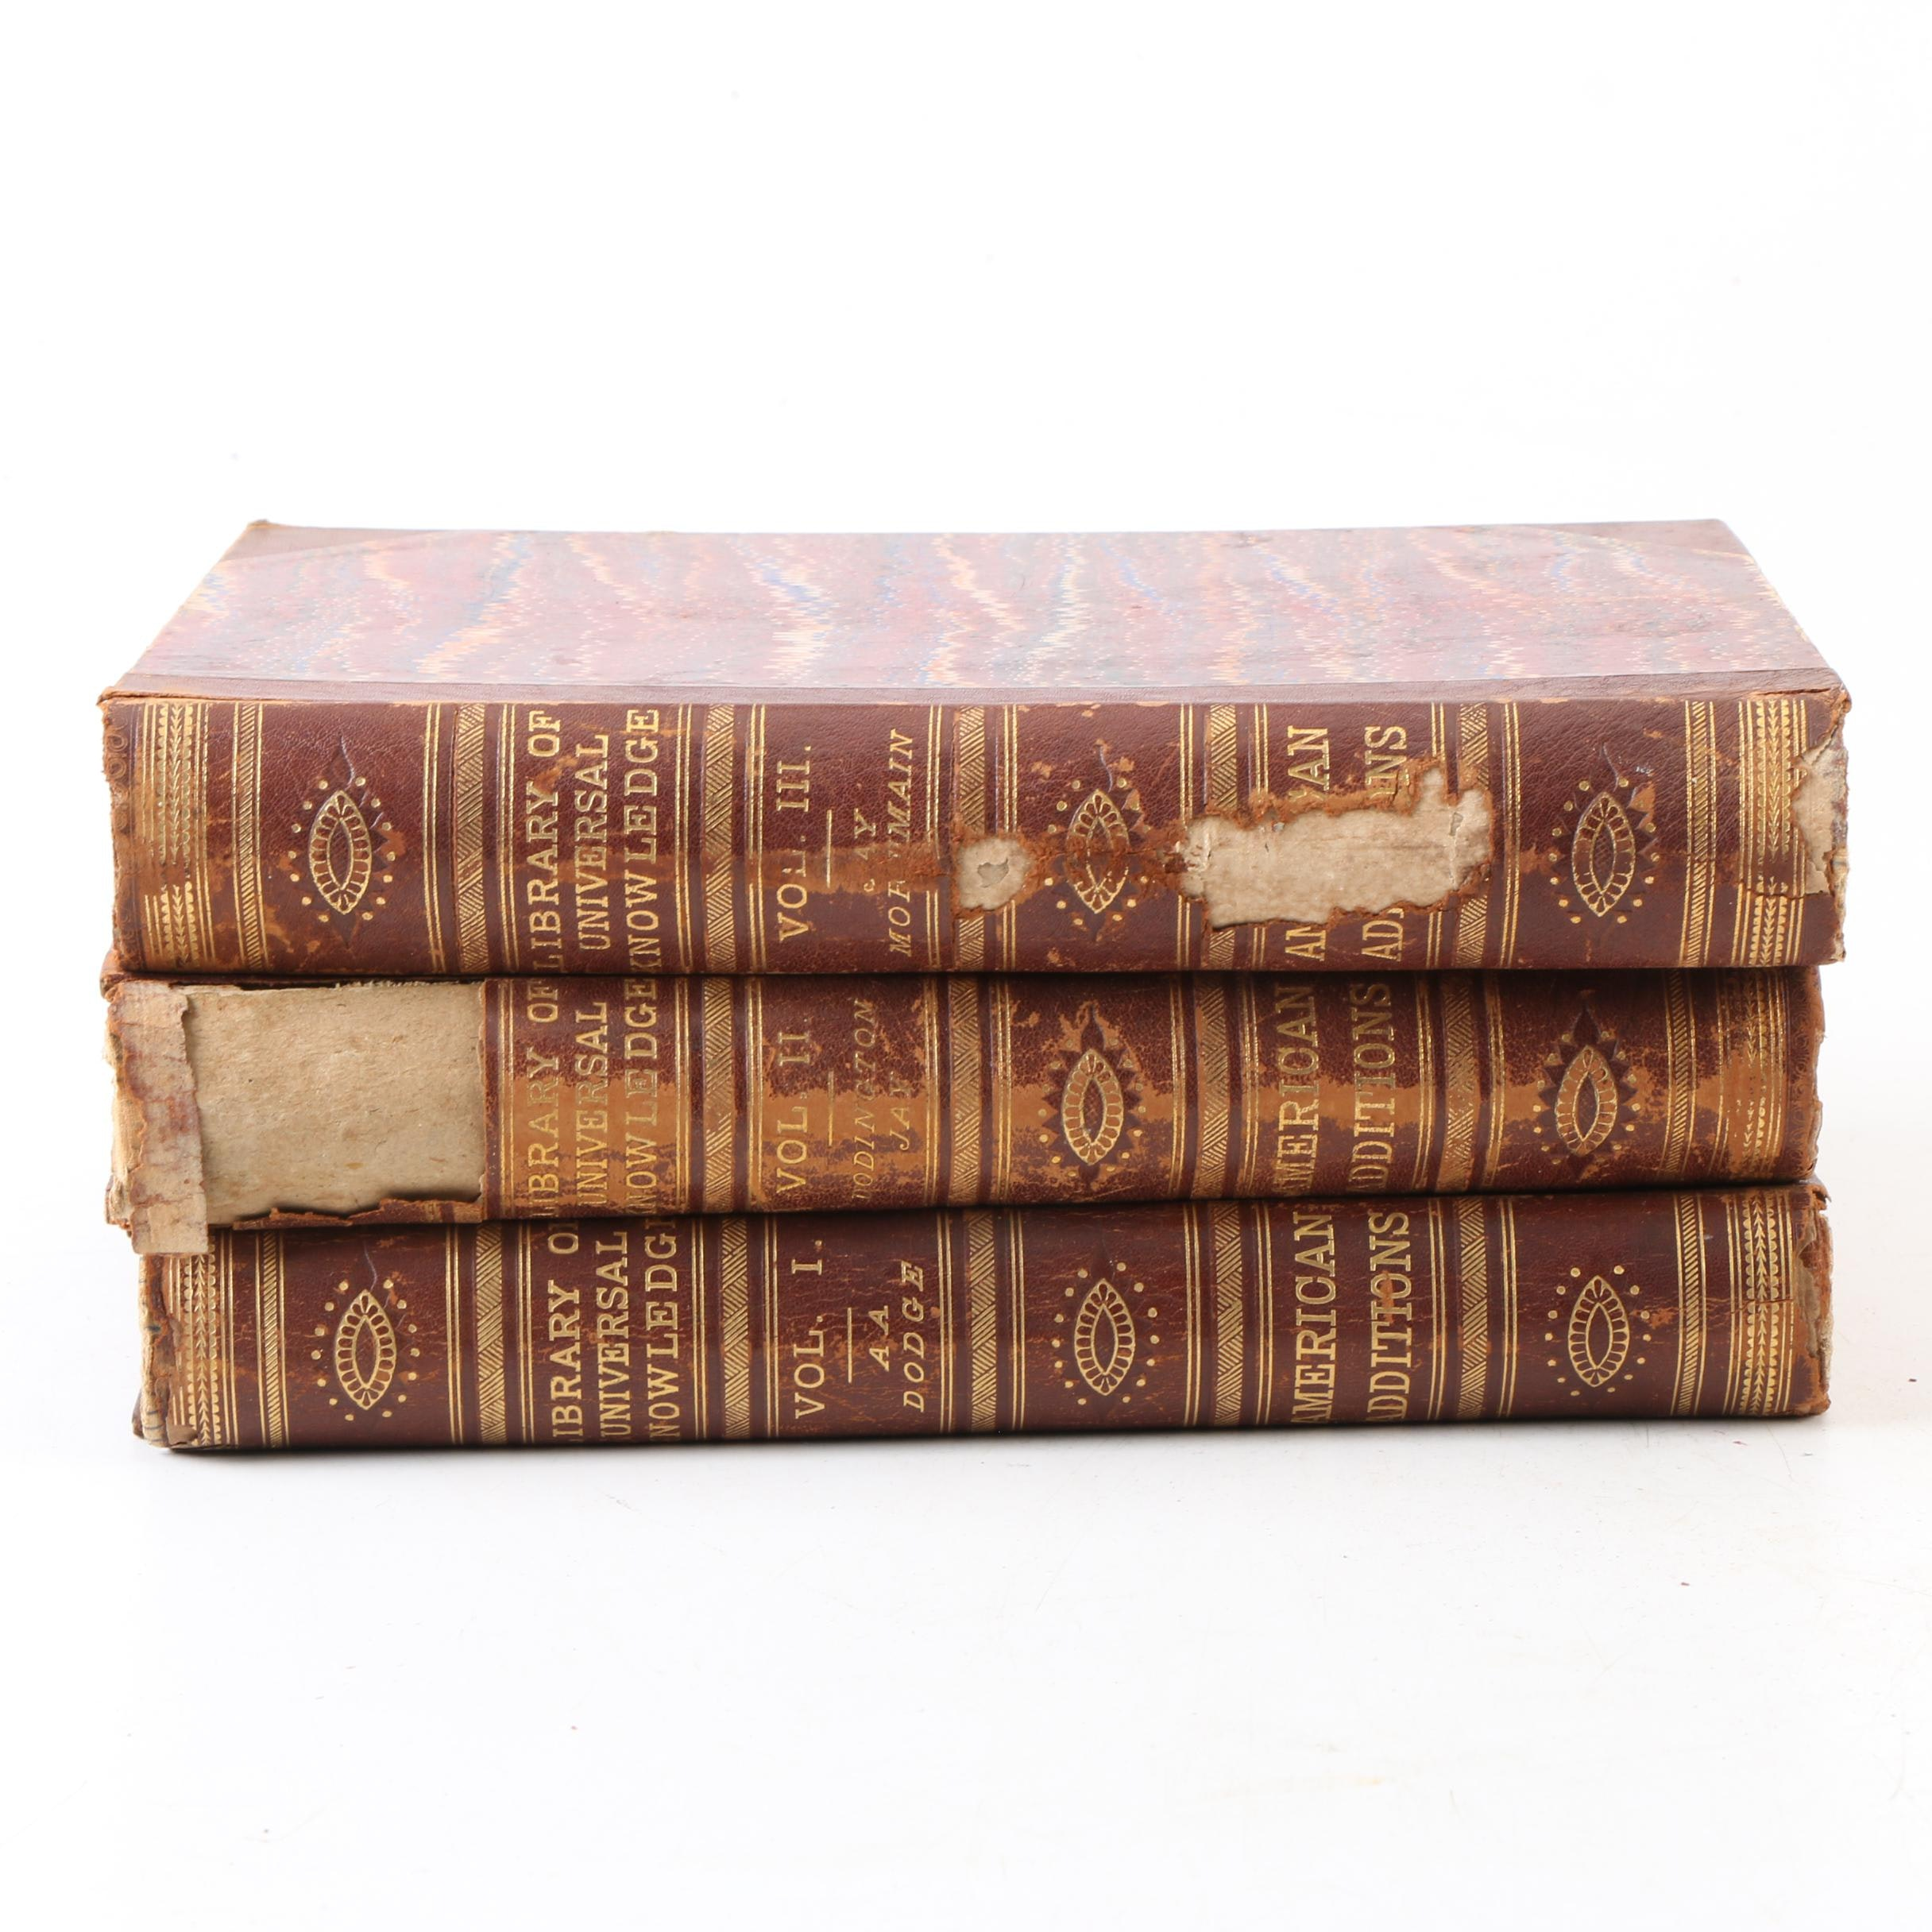 "1880 ""Library of Universal Knowledge"" Volumes"